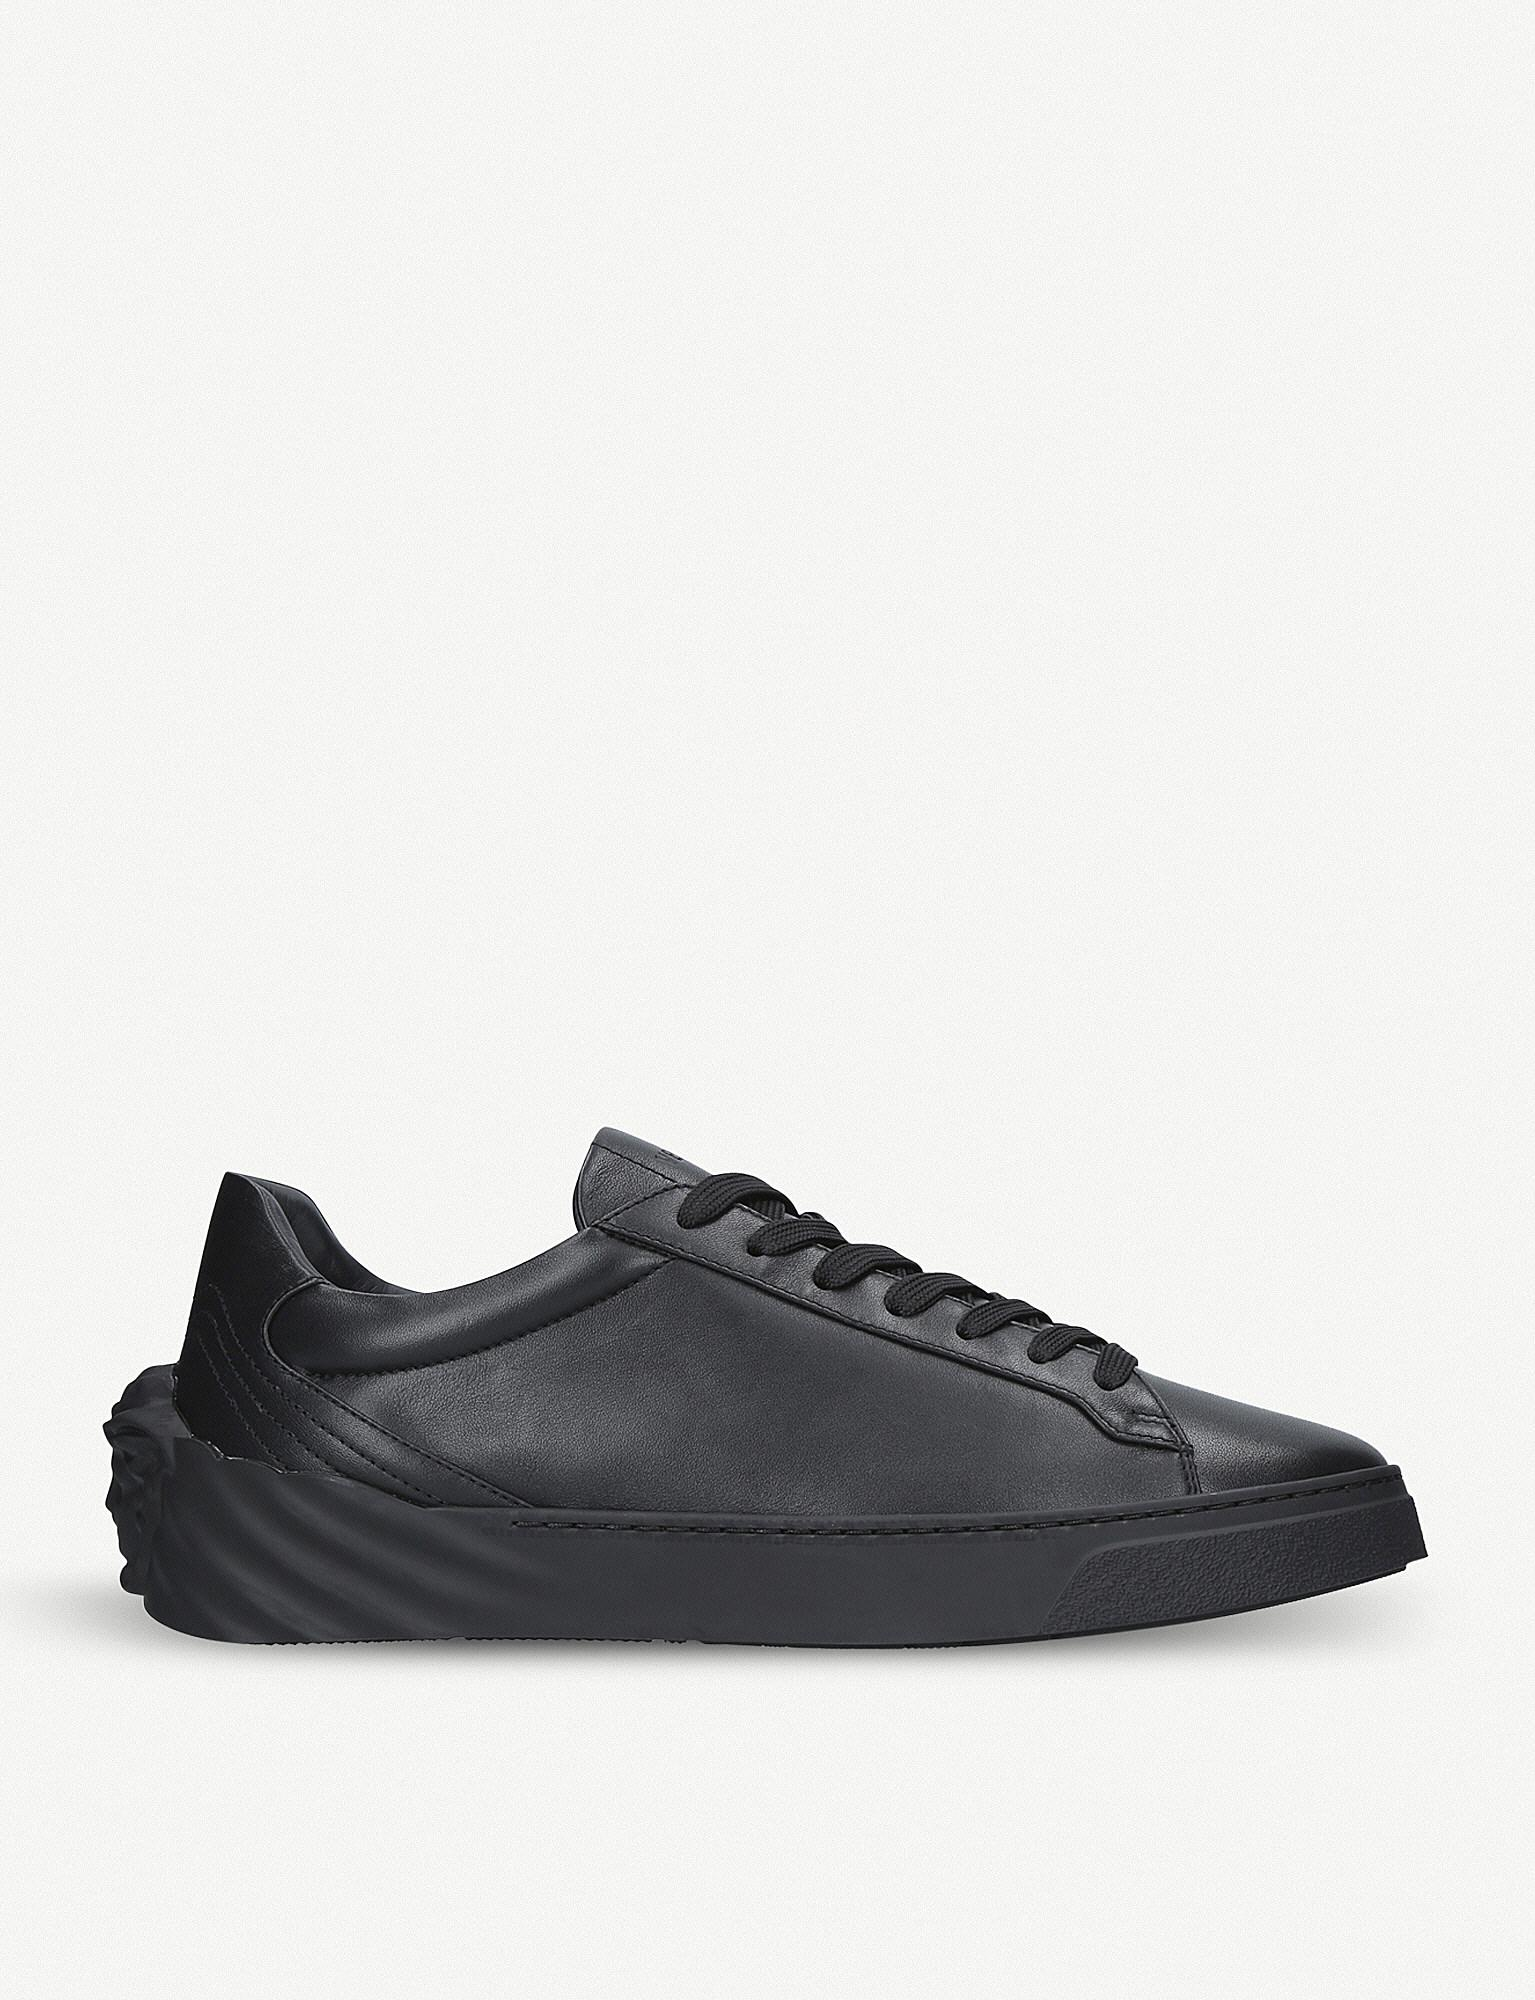 Versace Back Medusa Leather Trainers in